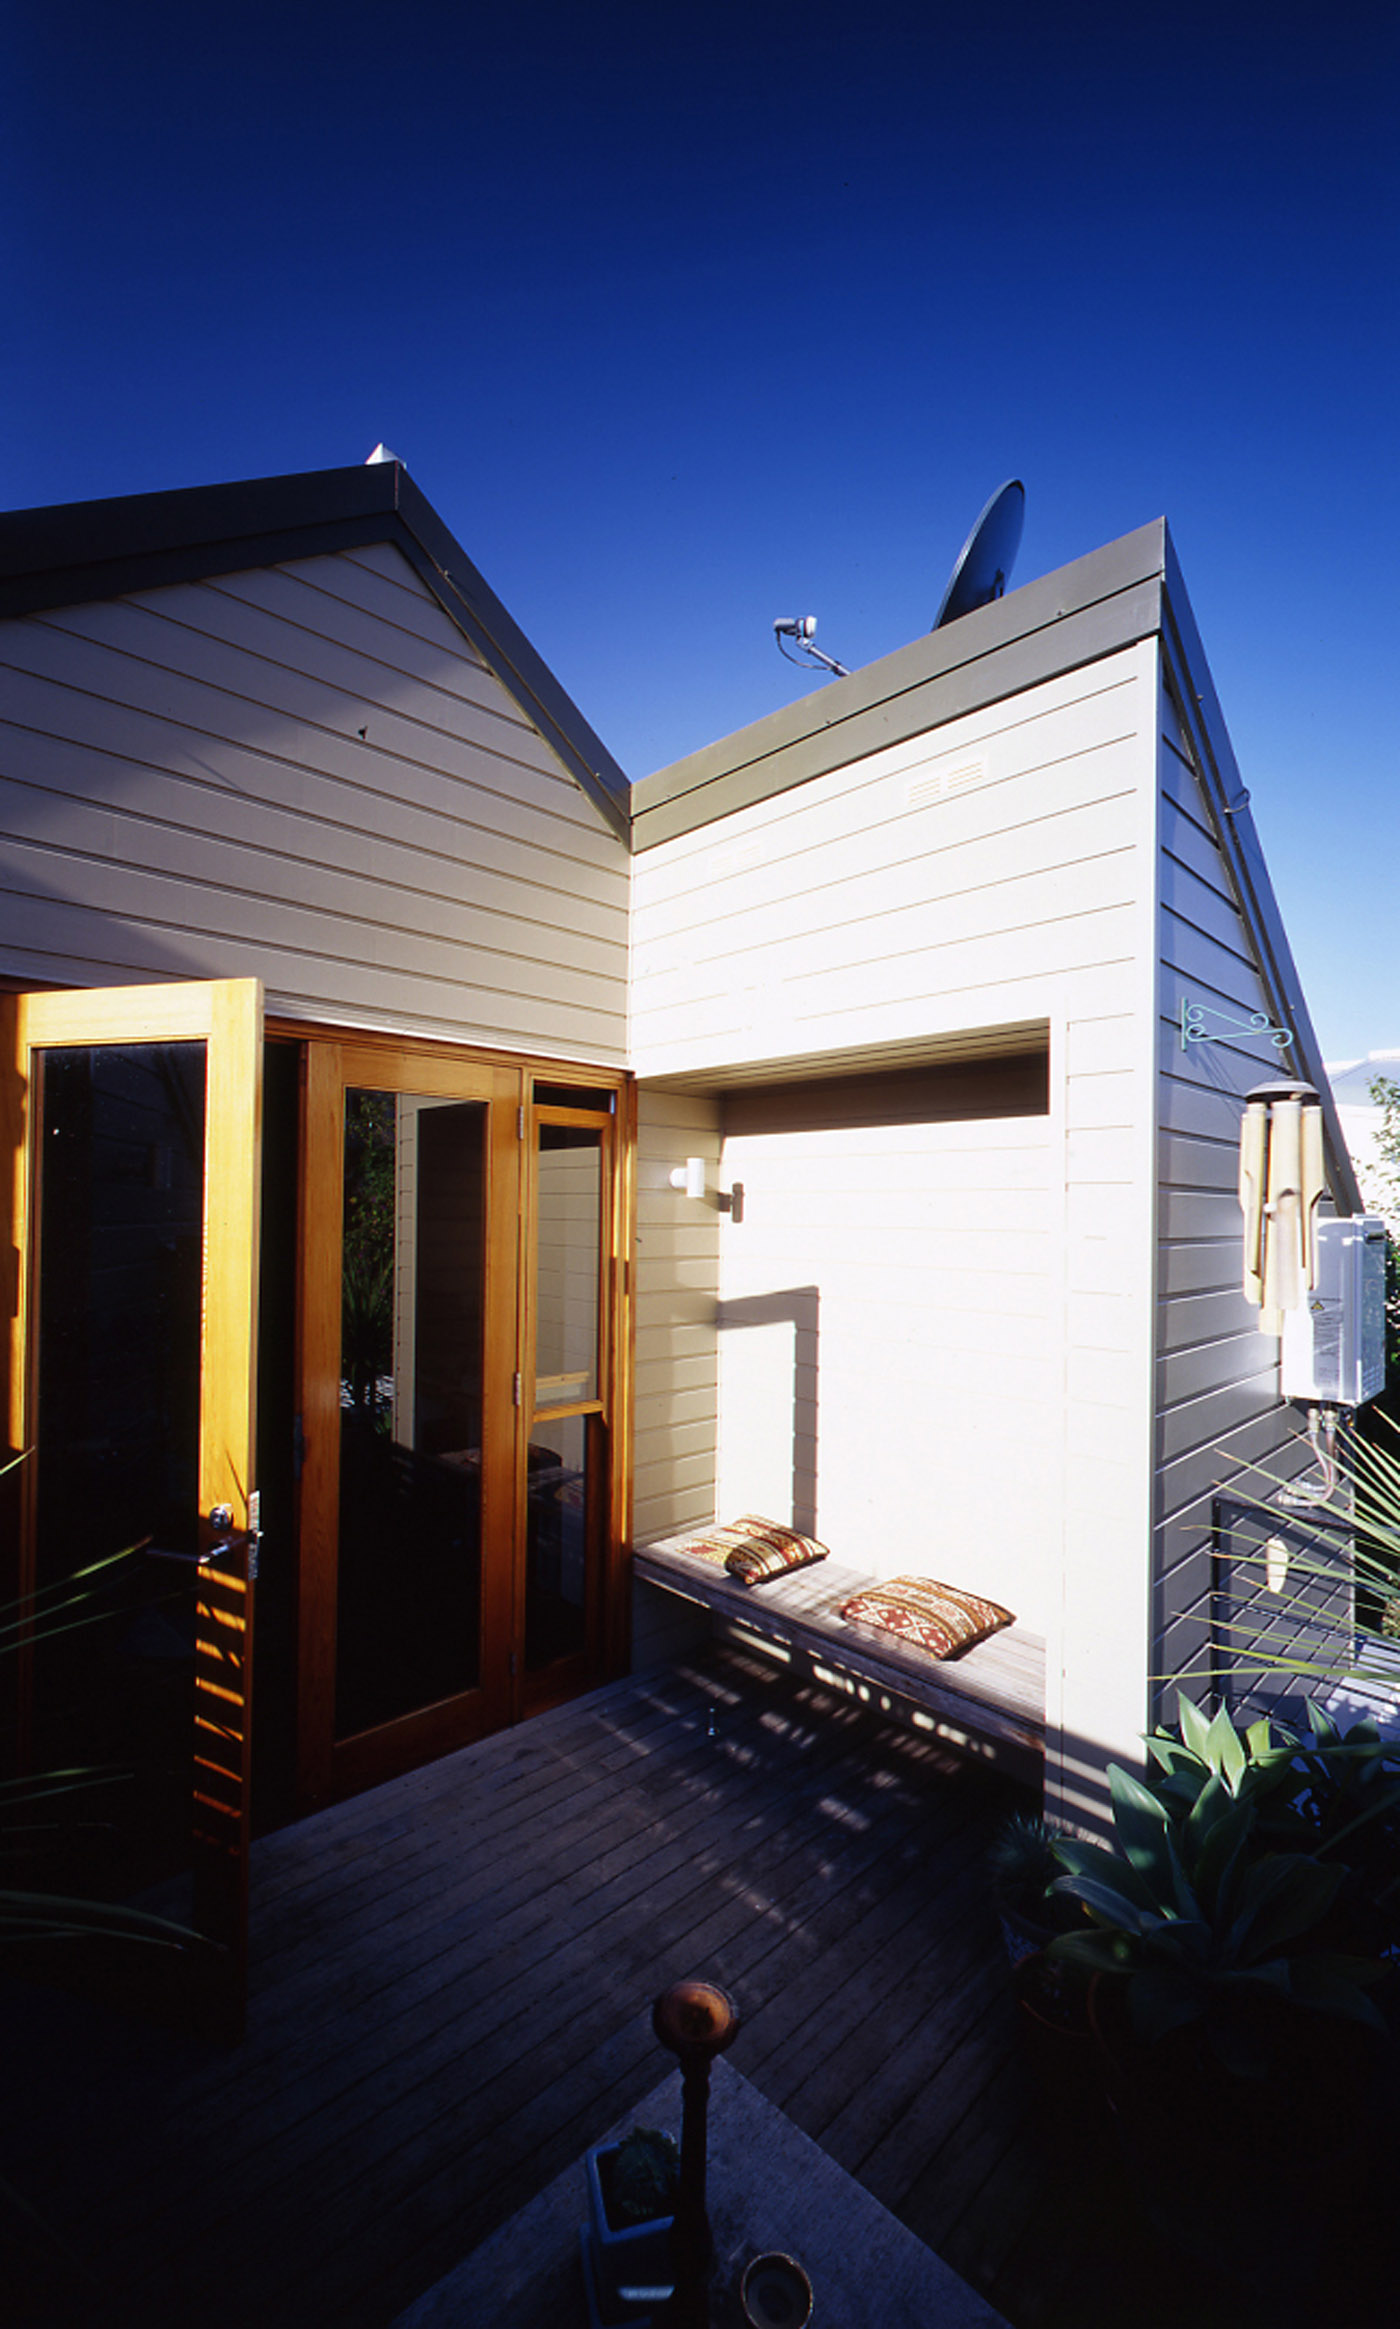 Bandi Drew House by Sydney award winning residential architecture firm Sam Crawford Architects. Outdoor balcony garden seating area